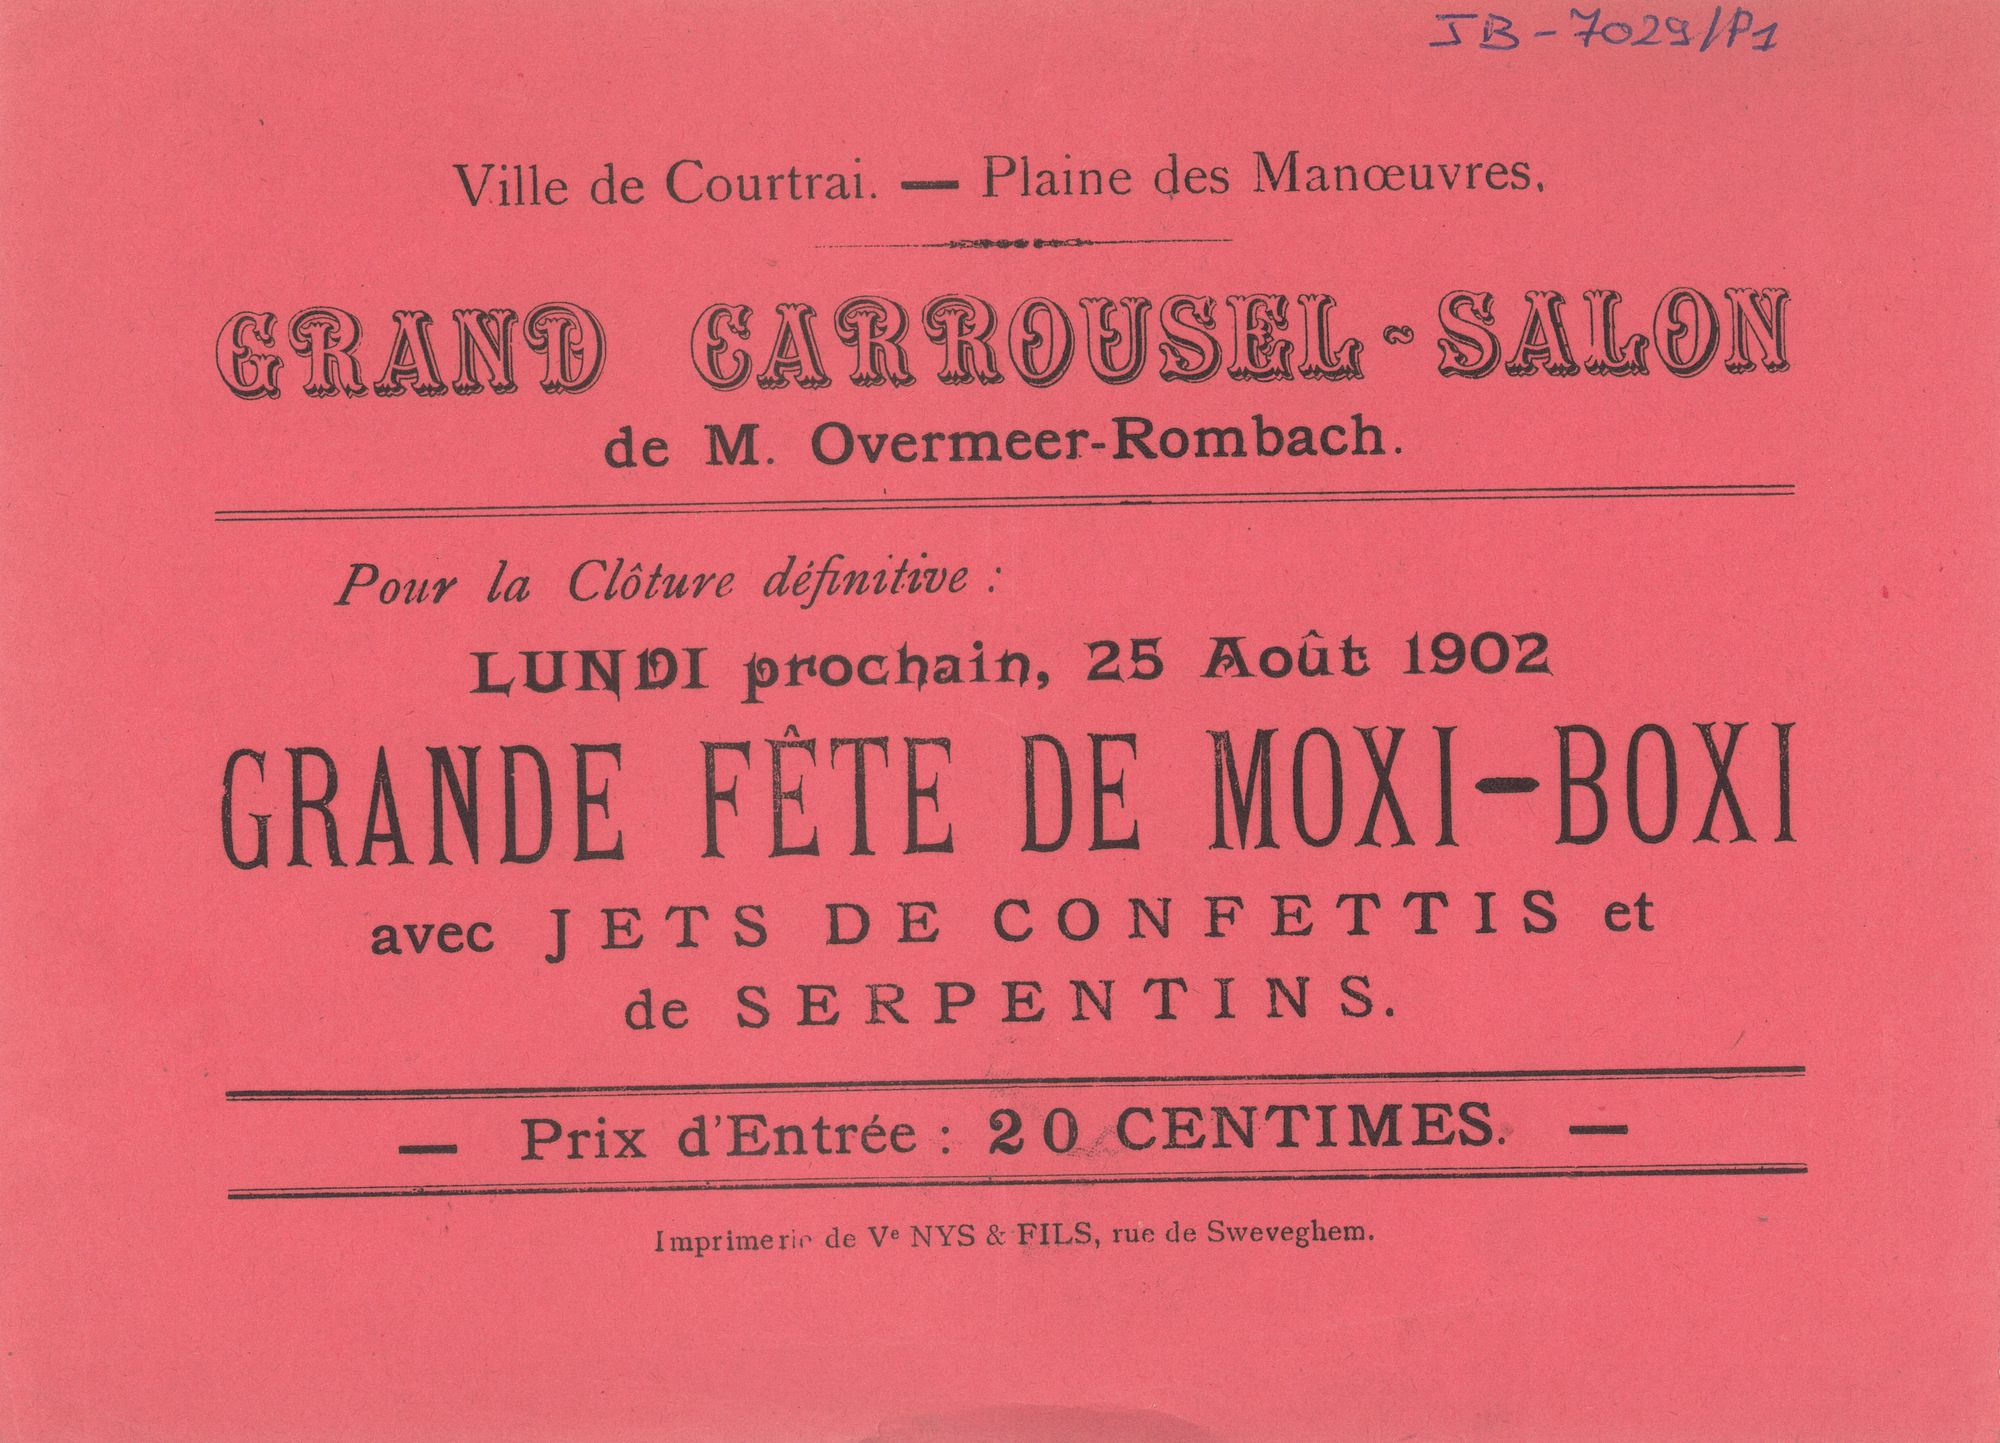 Paasfoor 1902: Grand Carrousel-Salon